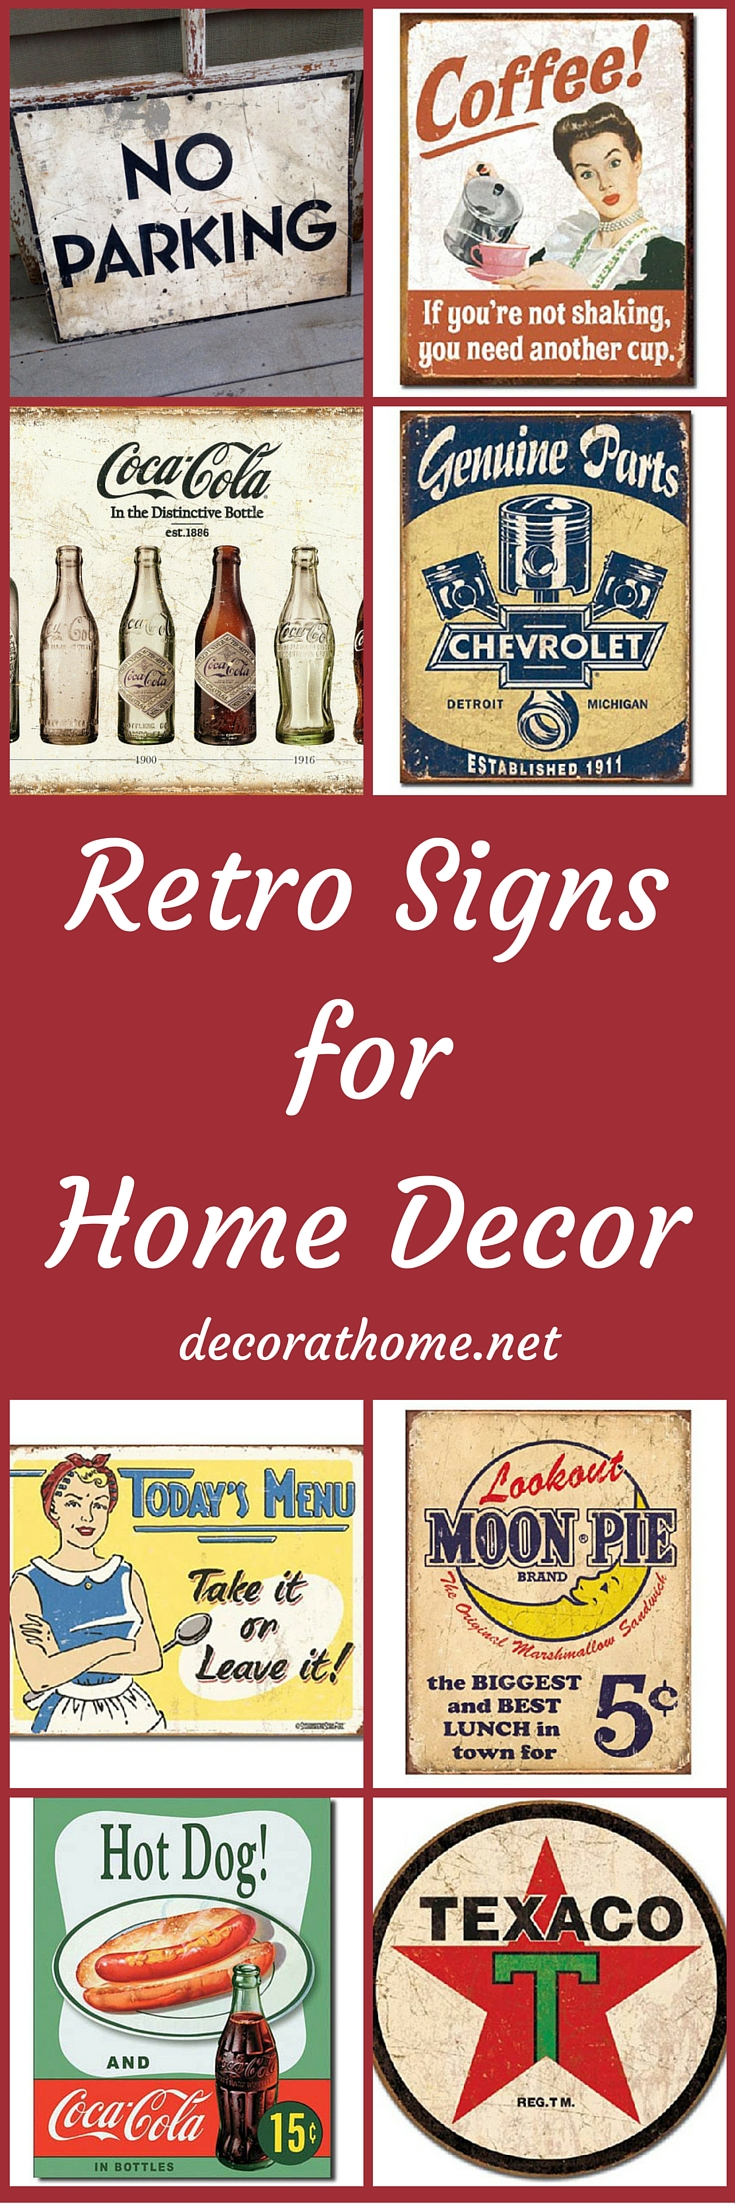 Retro Signs for Home Decor